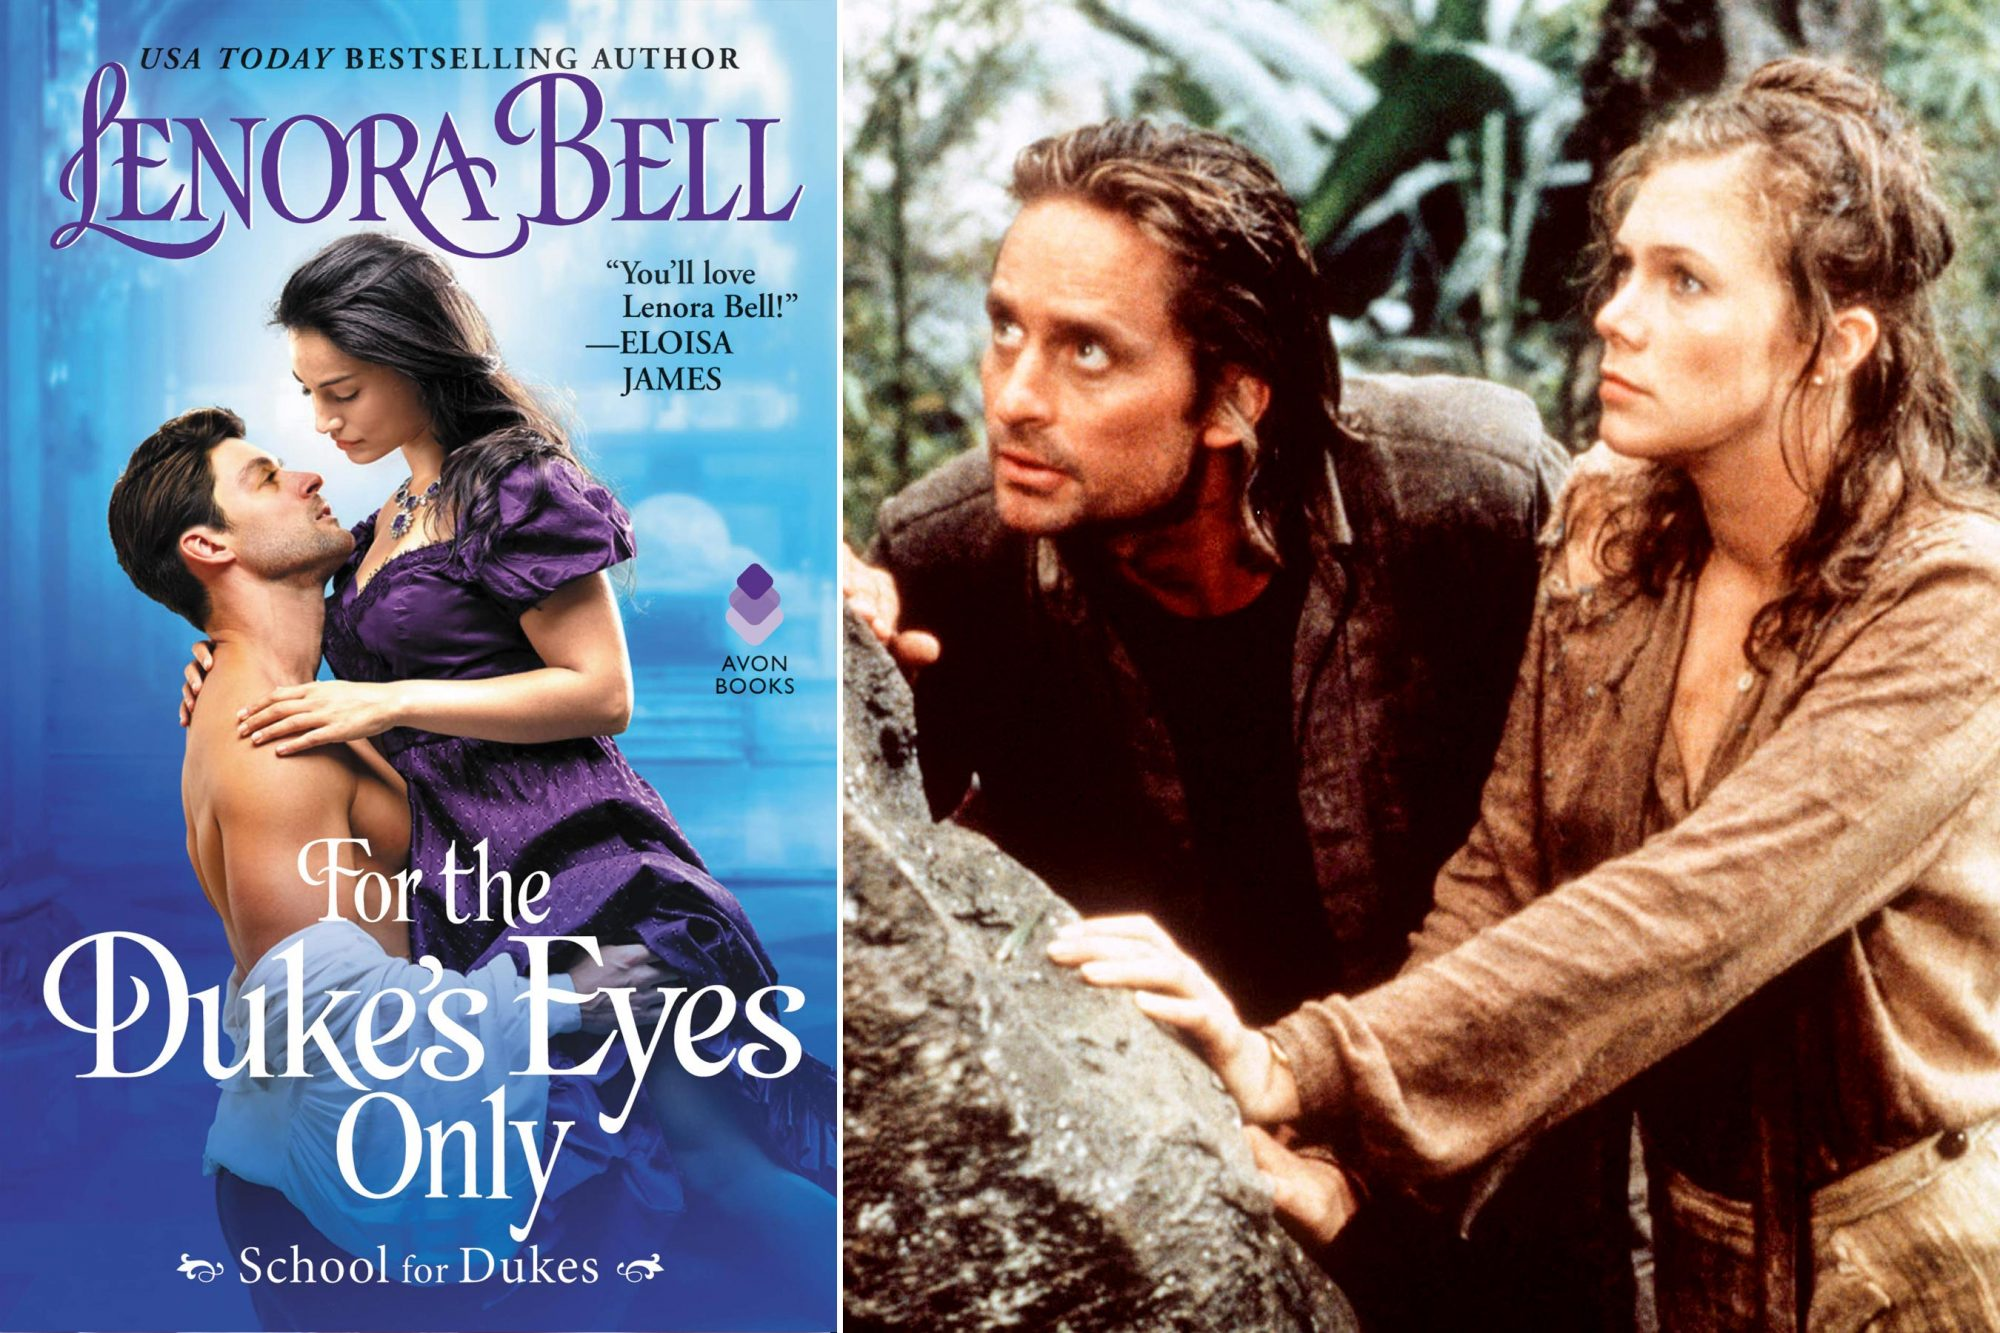 Read For the Duke's Eyes Only by Lenora Bell; Watch Romancing the Stone (1984)